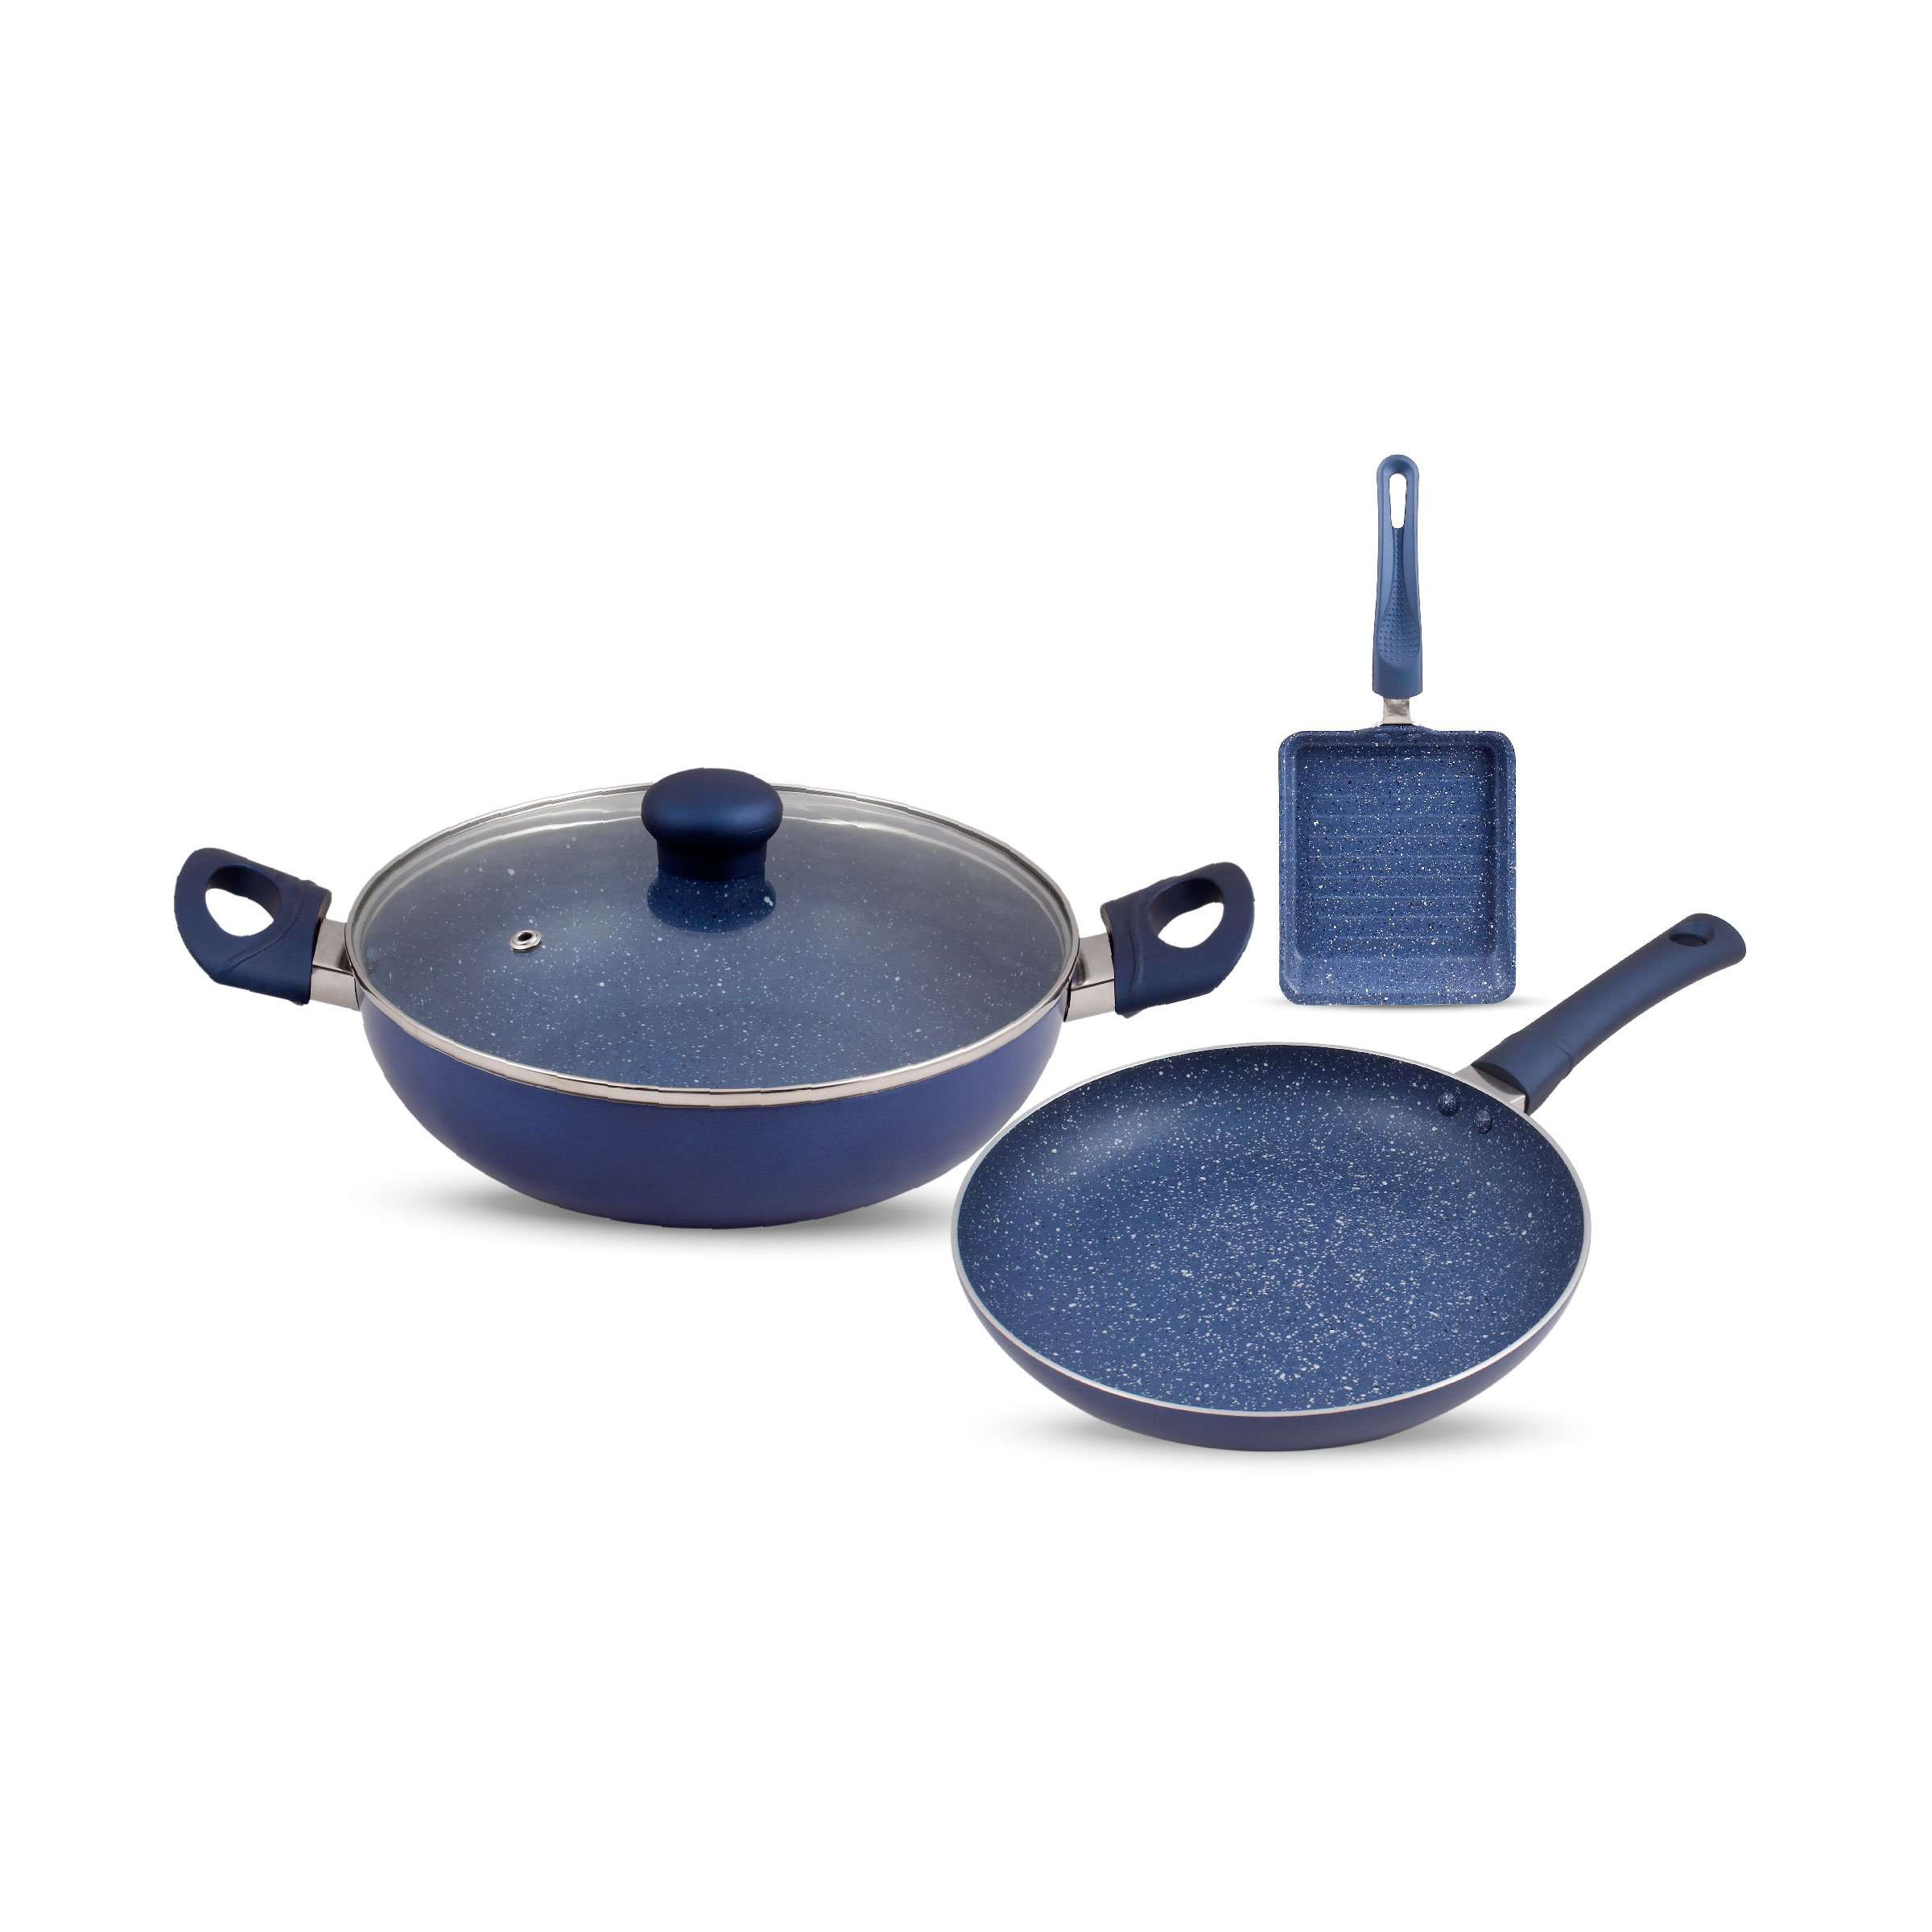 Krav 3 Pieces Non Stick Cookware Set, Midnight Blue Color - (Kadhai with Lid + Tawa + Grill Pan)